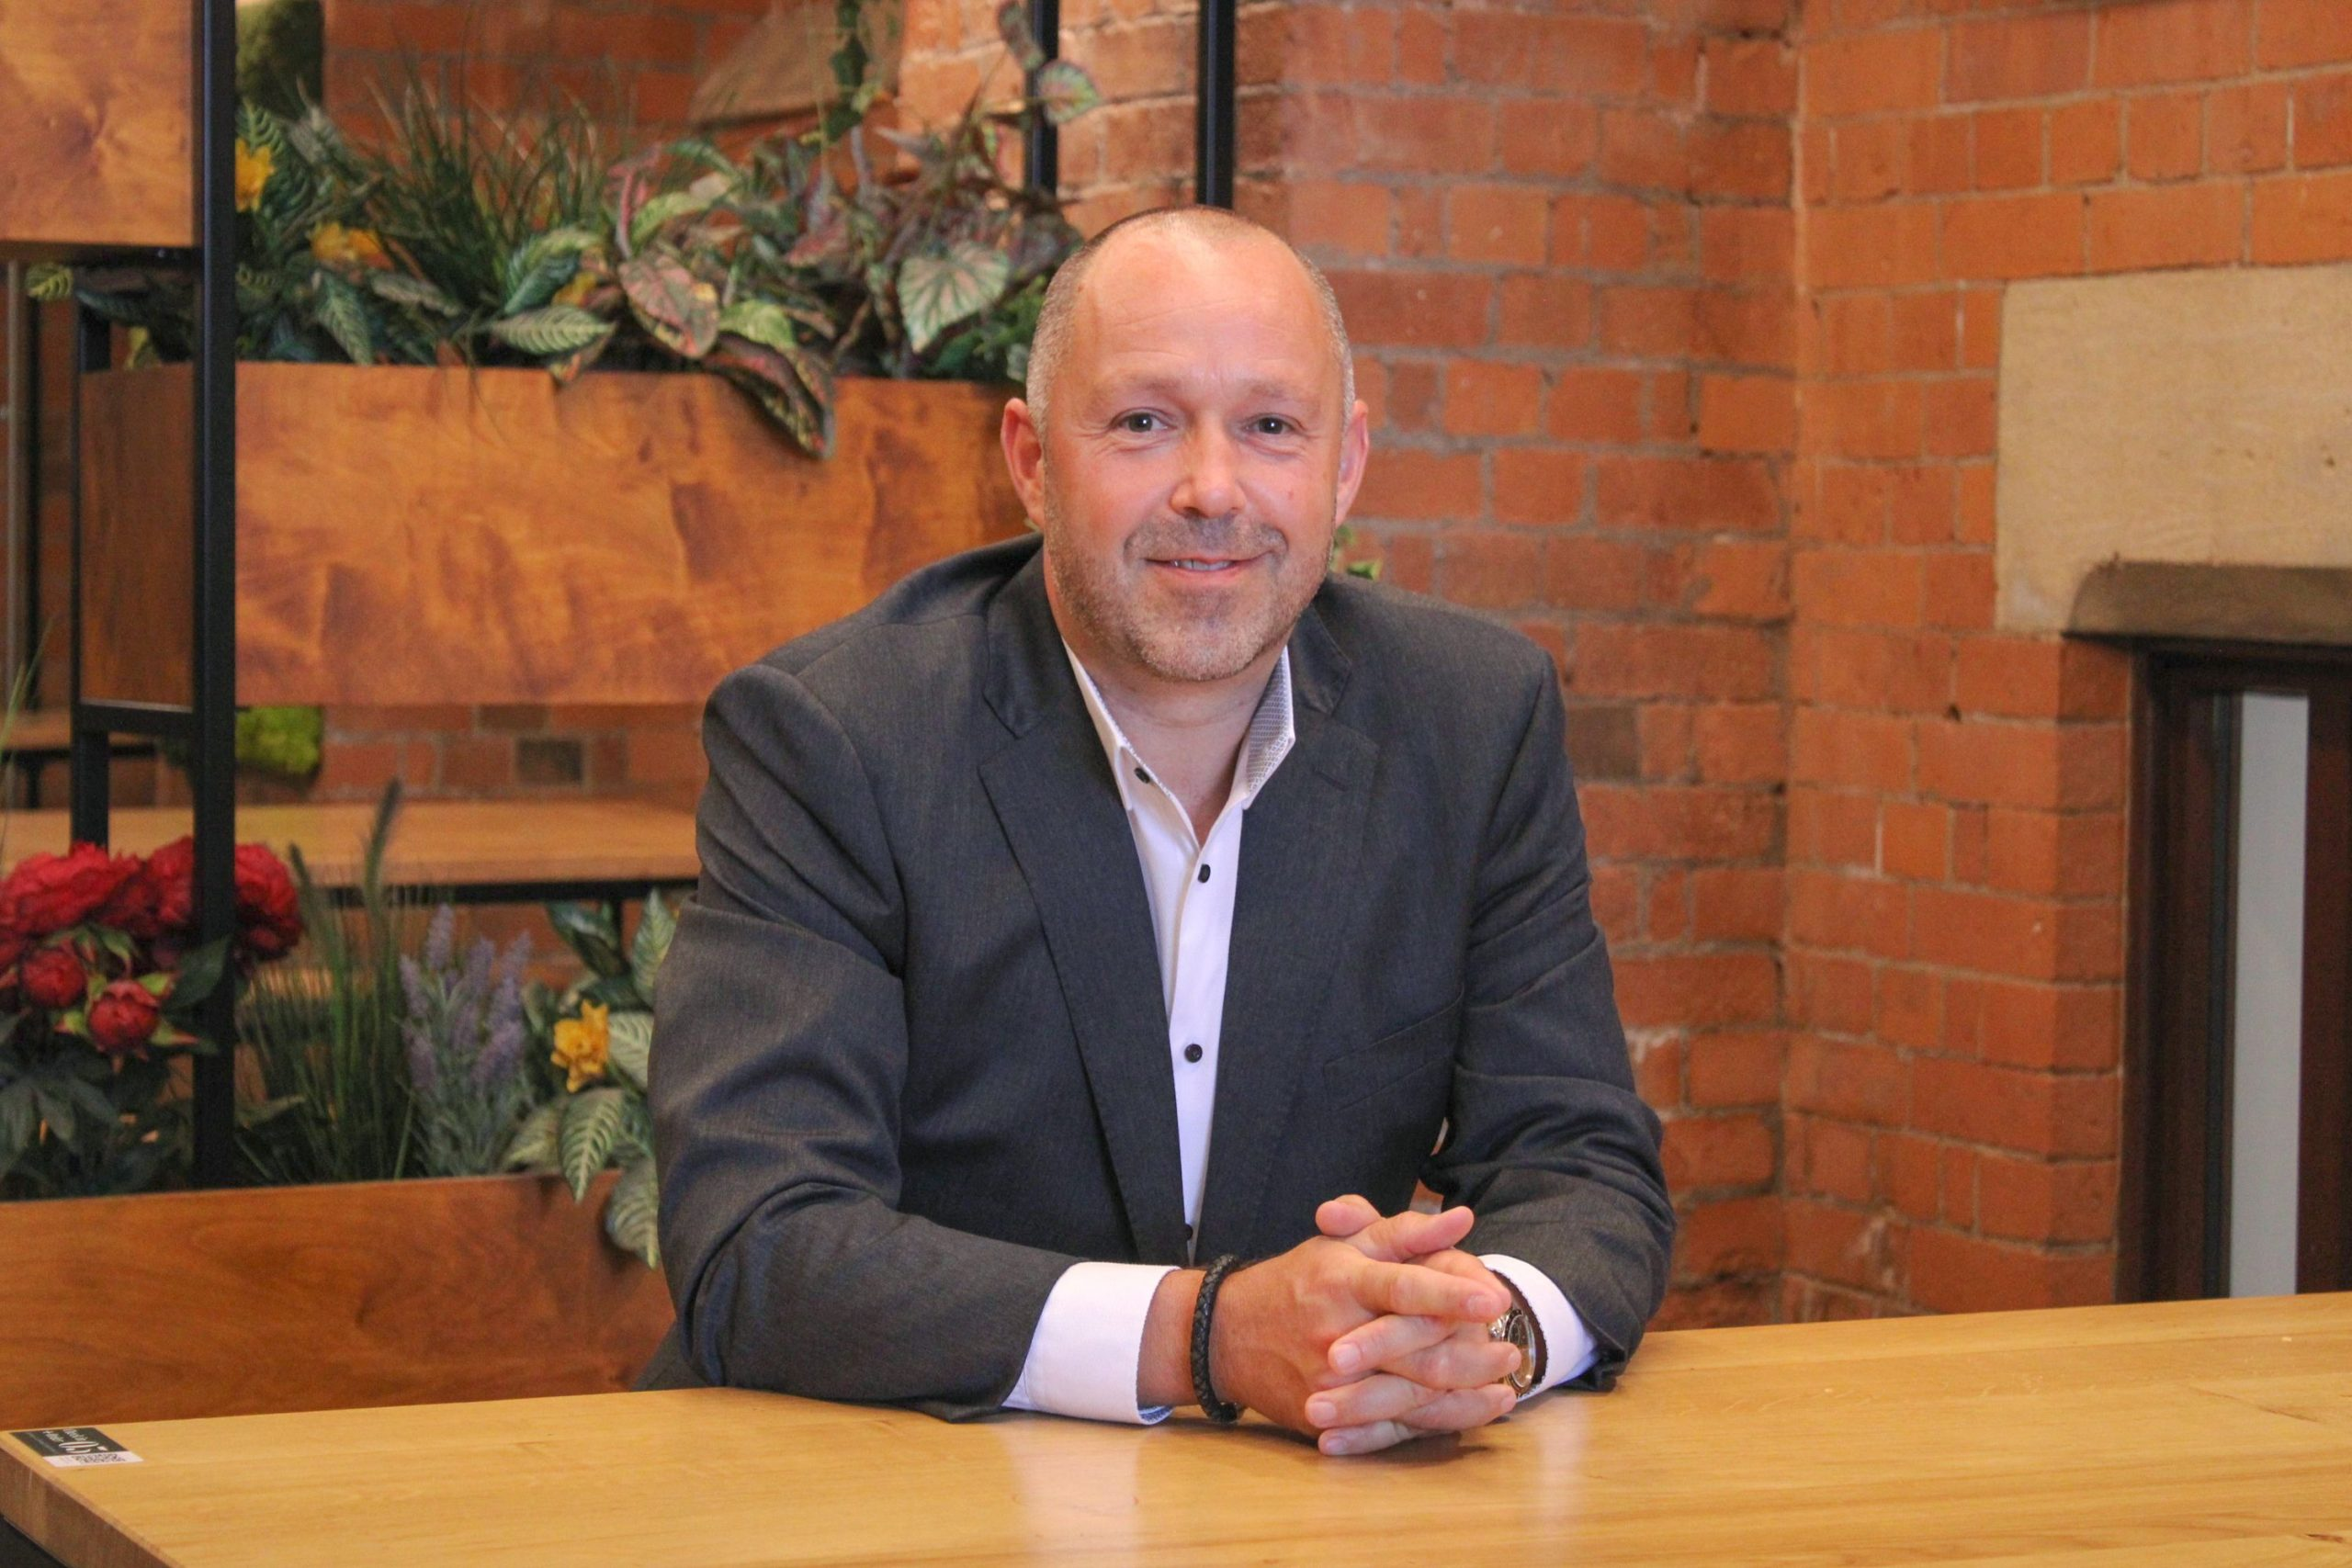 Specialist recruitment agency launched by industry expert